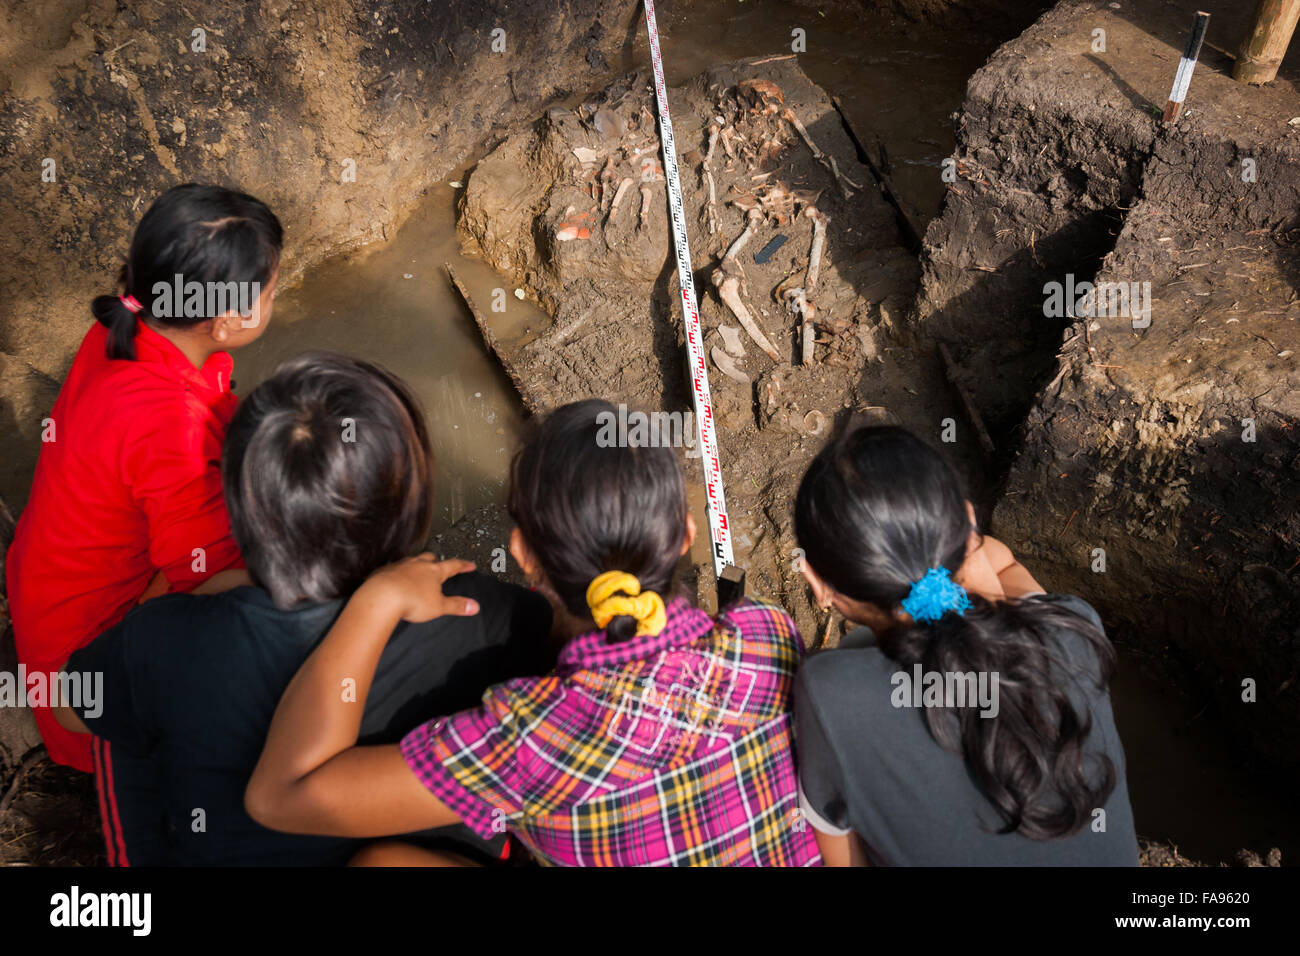 Local people watching archaeological excavation site of prehistoric human bones. - Stock Image